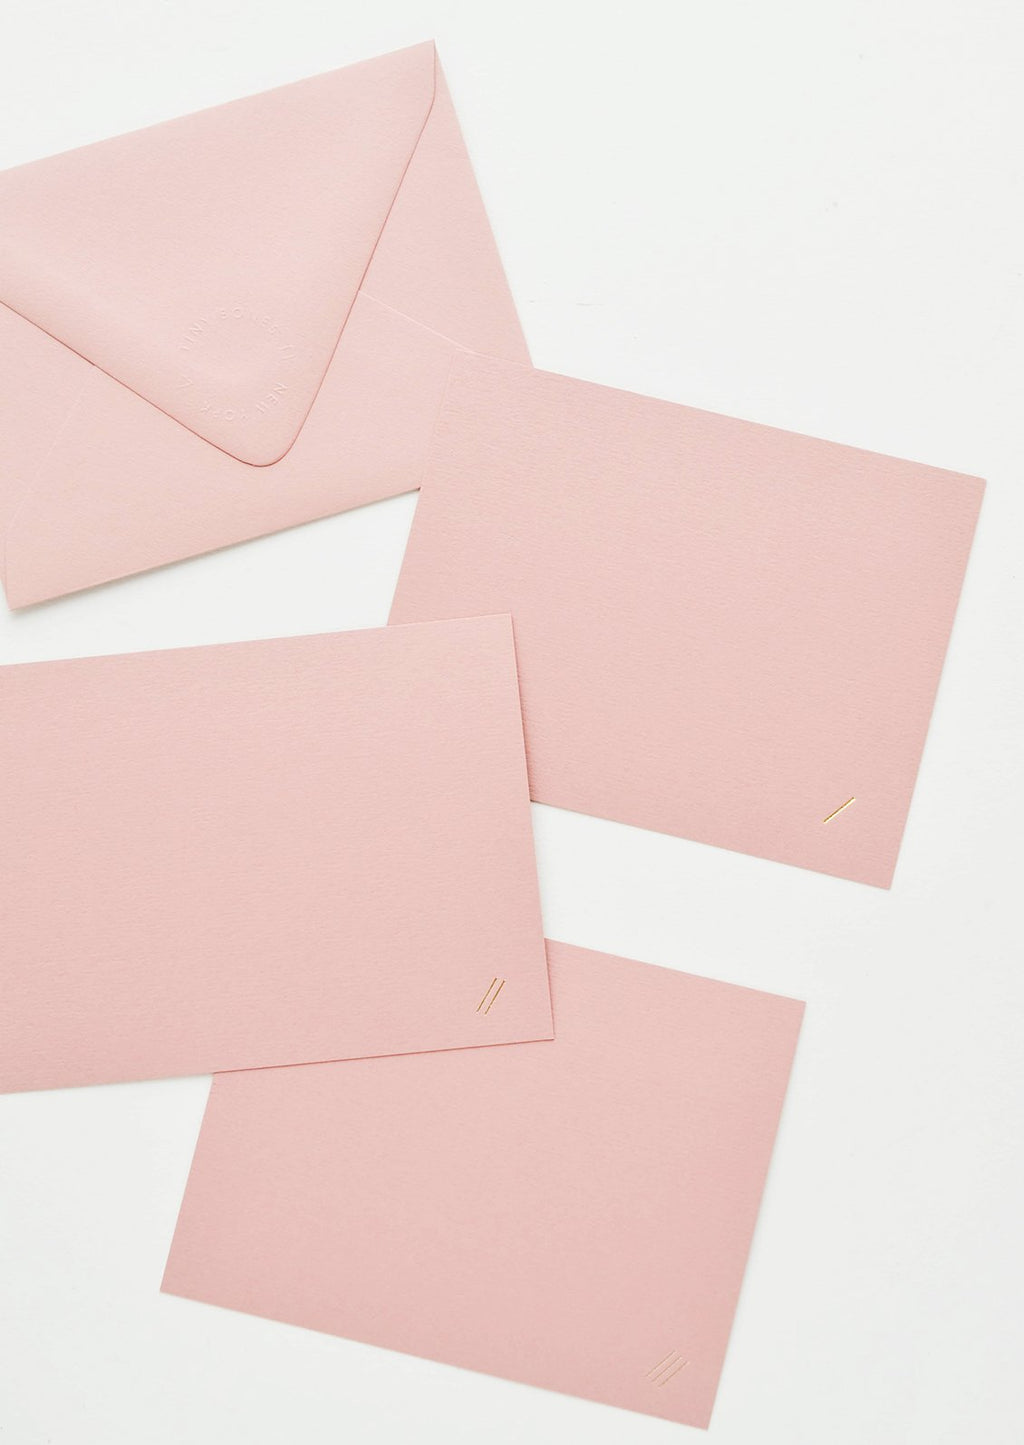 Set of 6: A pink envelope and three pink greeting card with two small gold foil diagonal lines at bottom right.